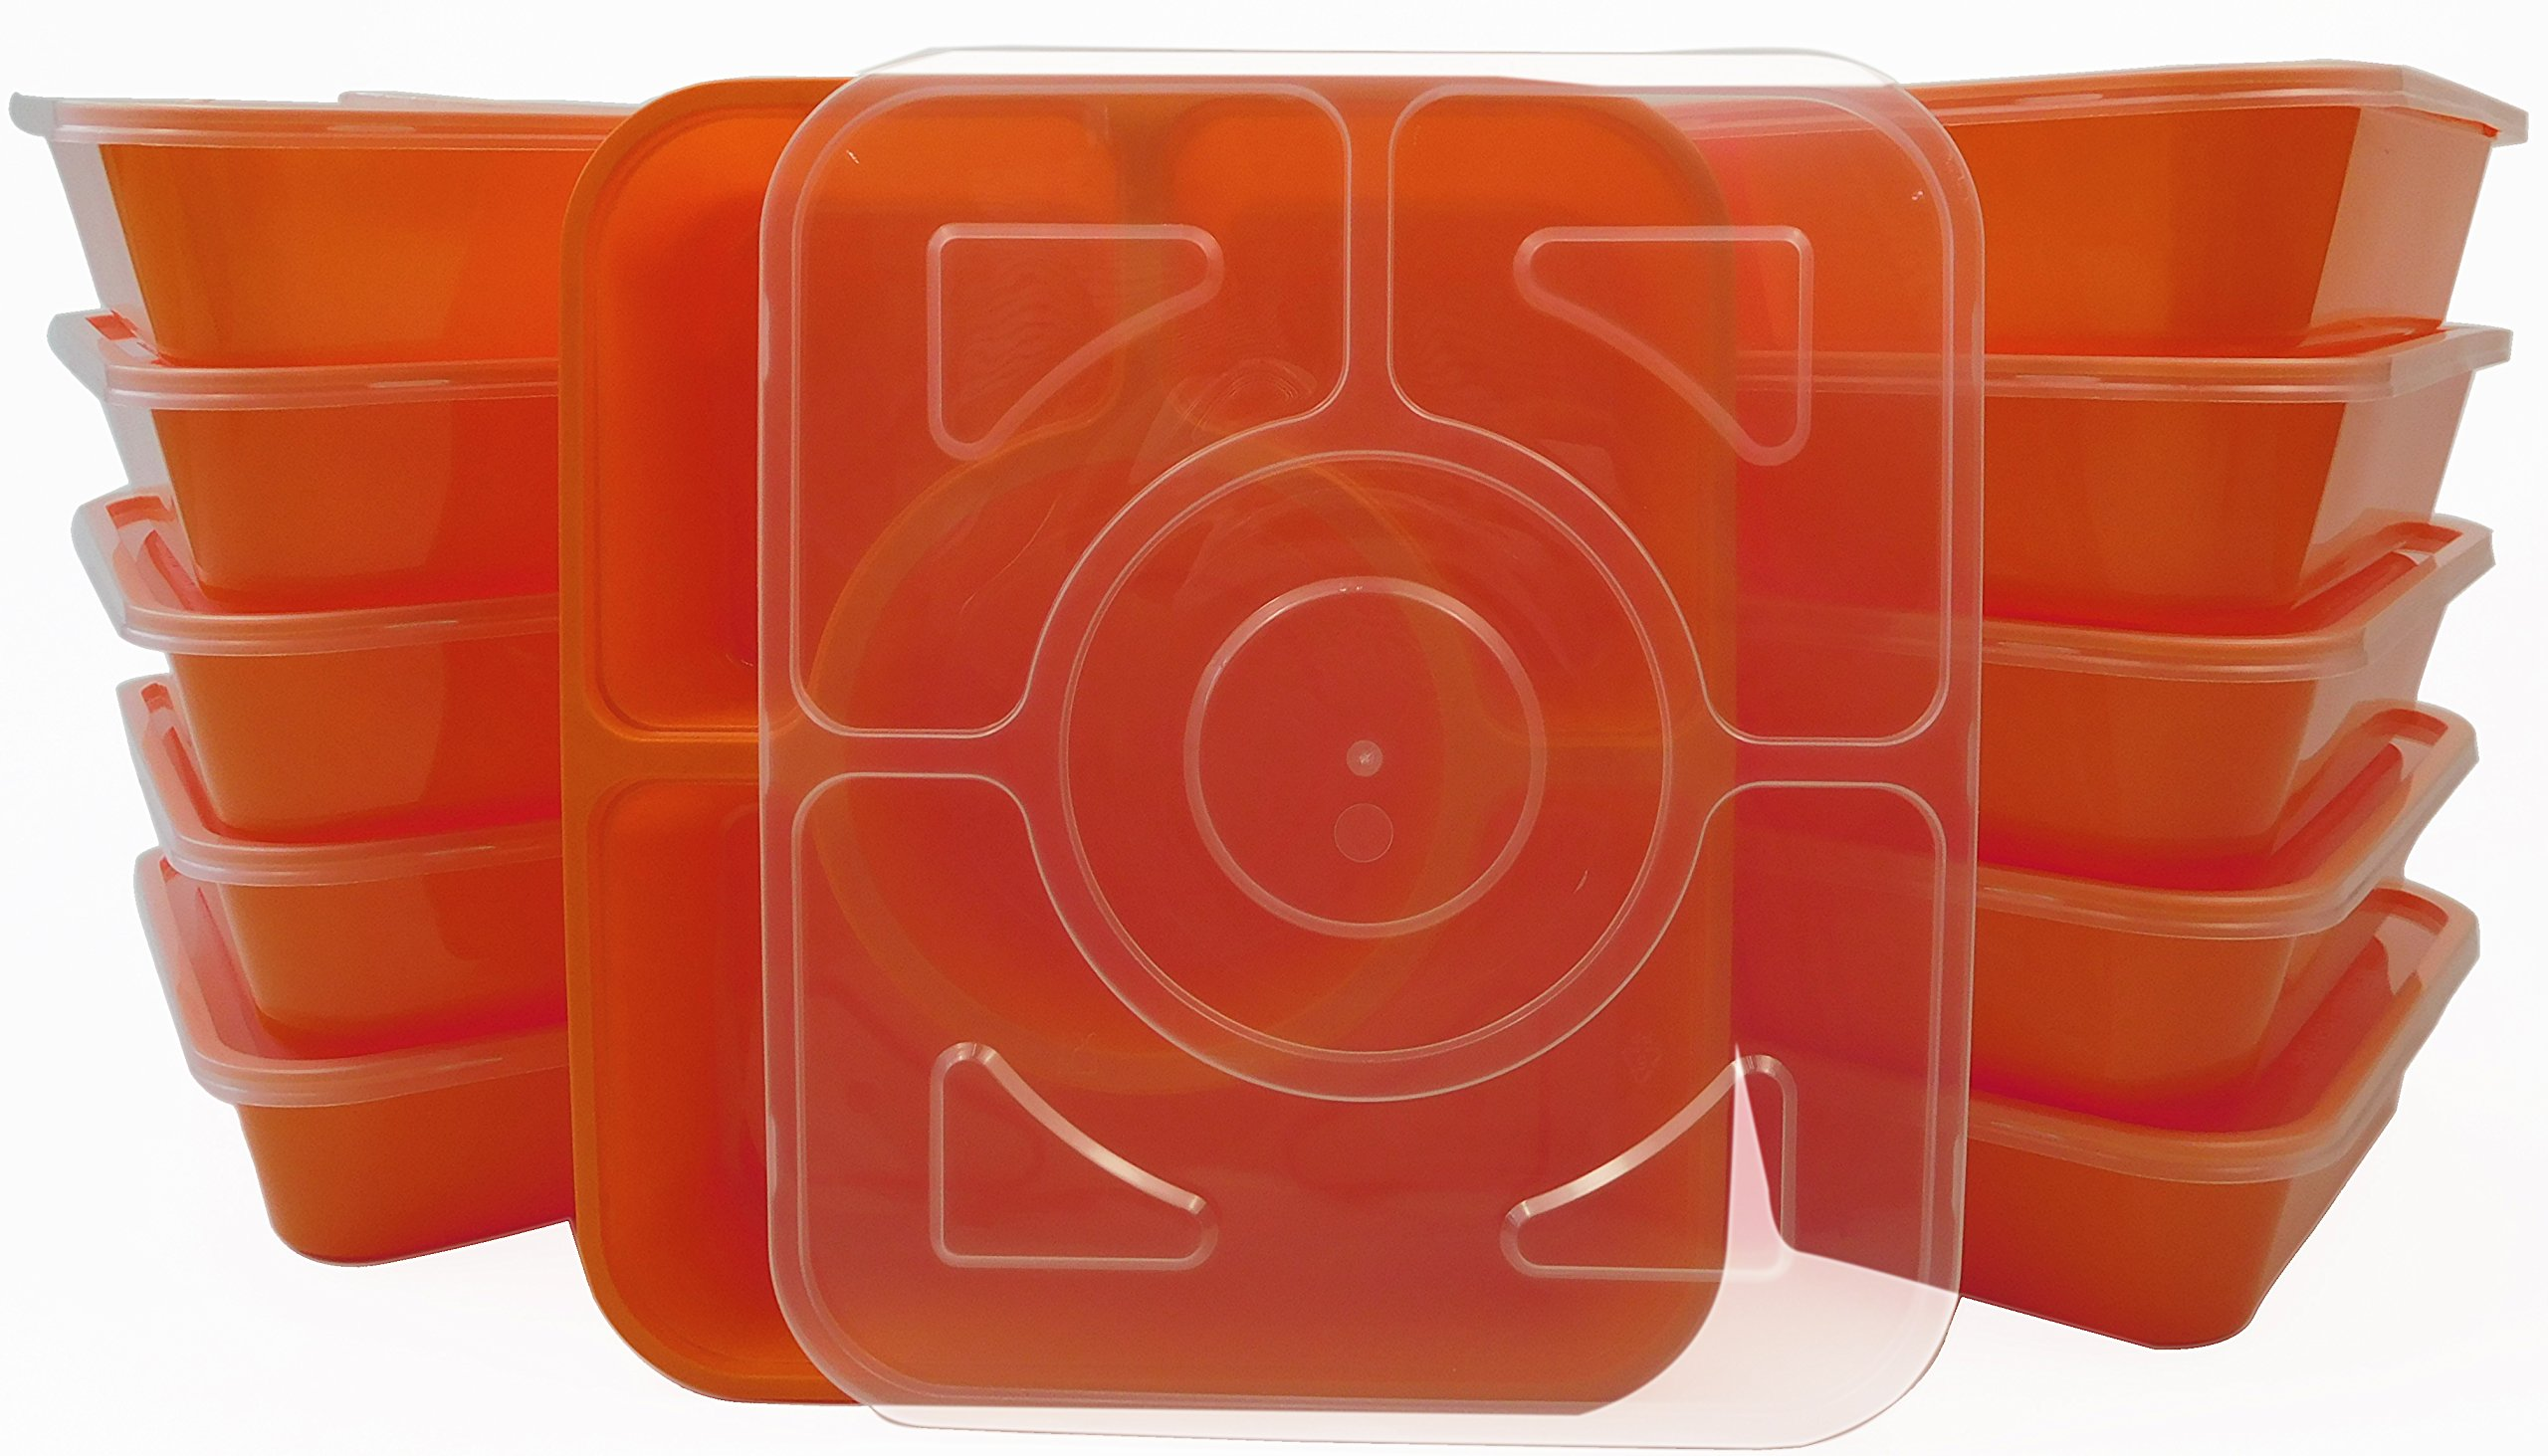 Table To Go 300-Pack Bento Lunch Boxes with Lids (4 Compartment/ 36 oz) (Orange)